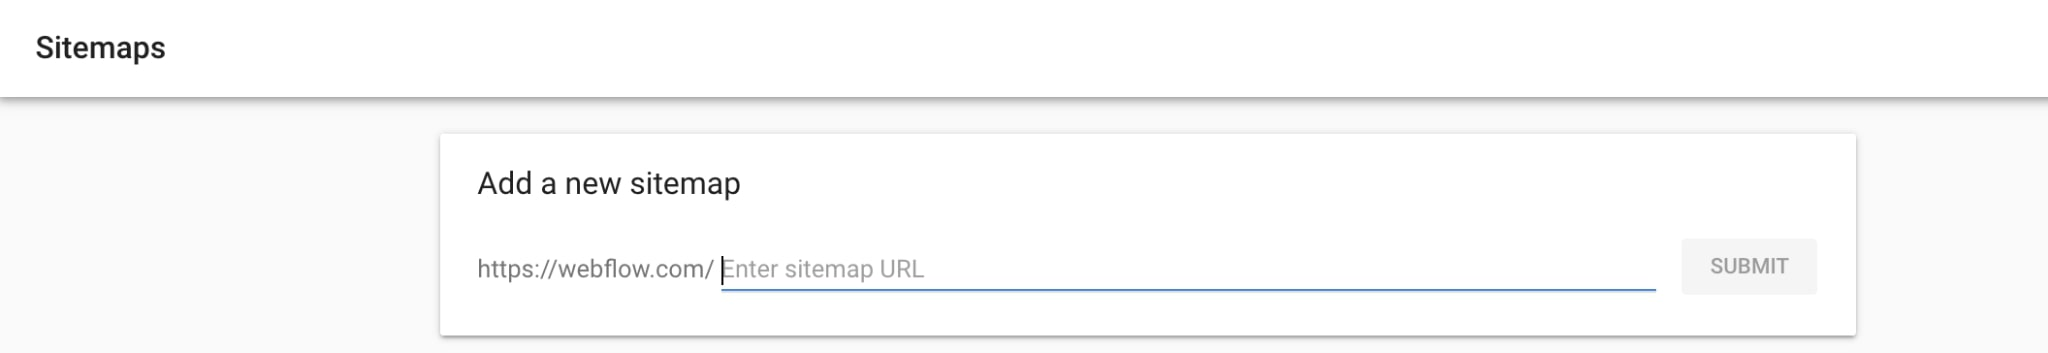 An image of submitting in the search console to notify google of the most inportant pages.